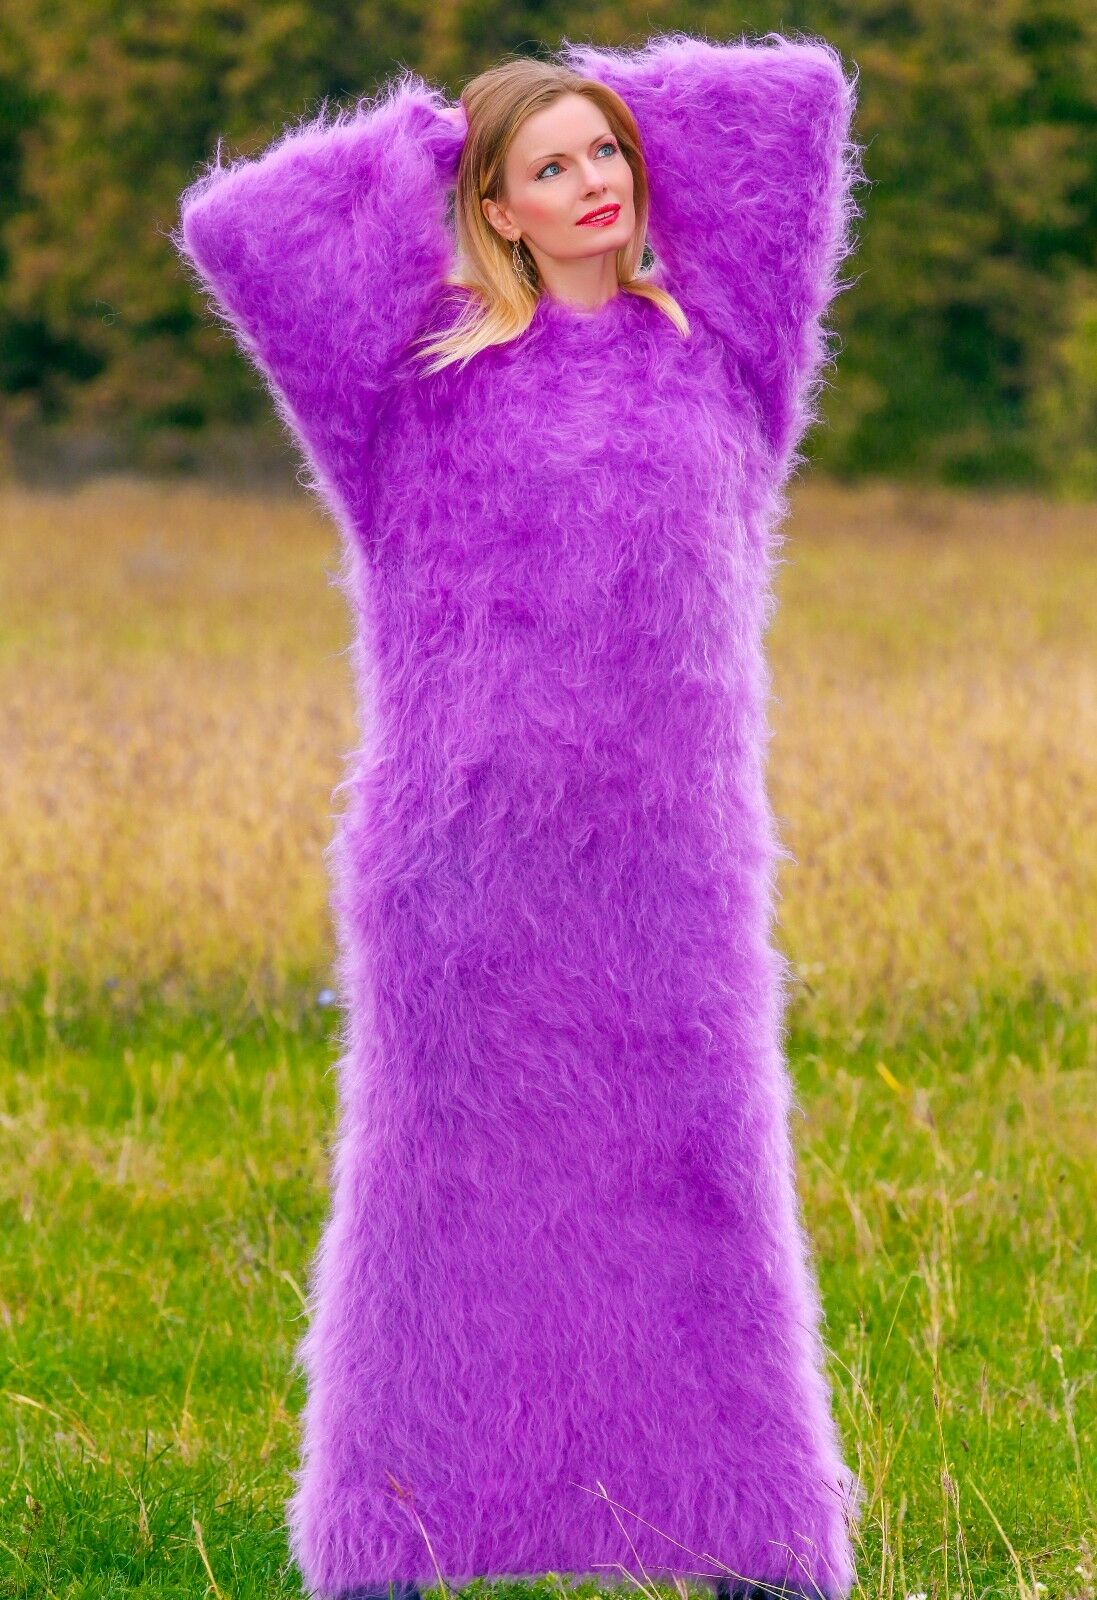 Purple hand knitted mohair sweater sweater sweater dress oversized fuzzy long gown by SUPERTANYA 094289